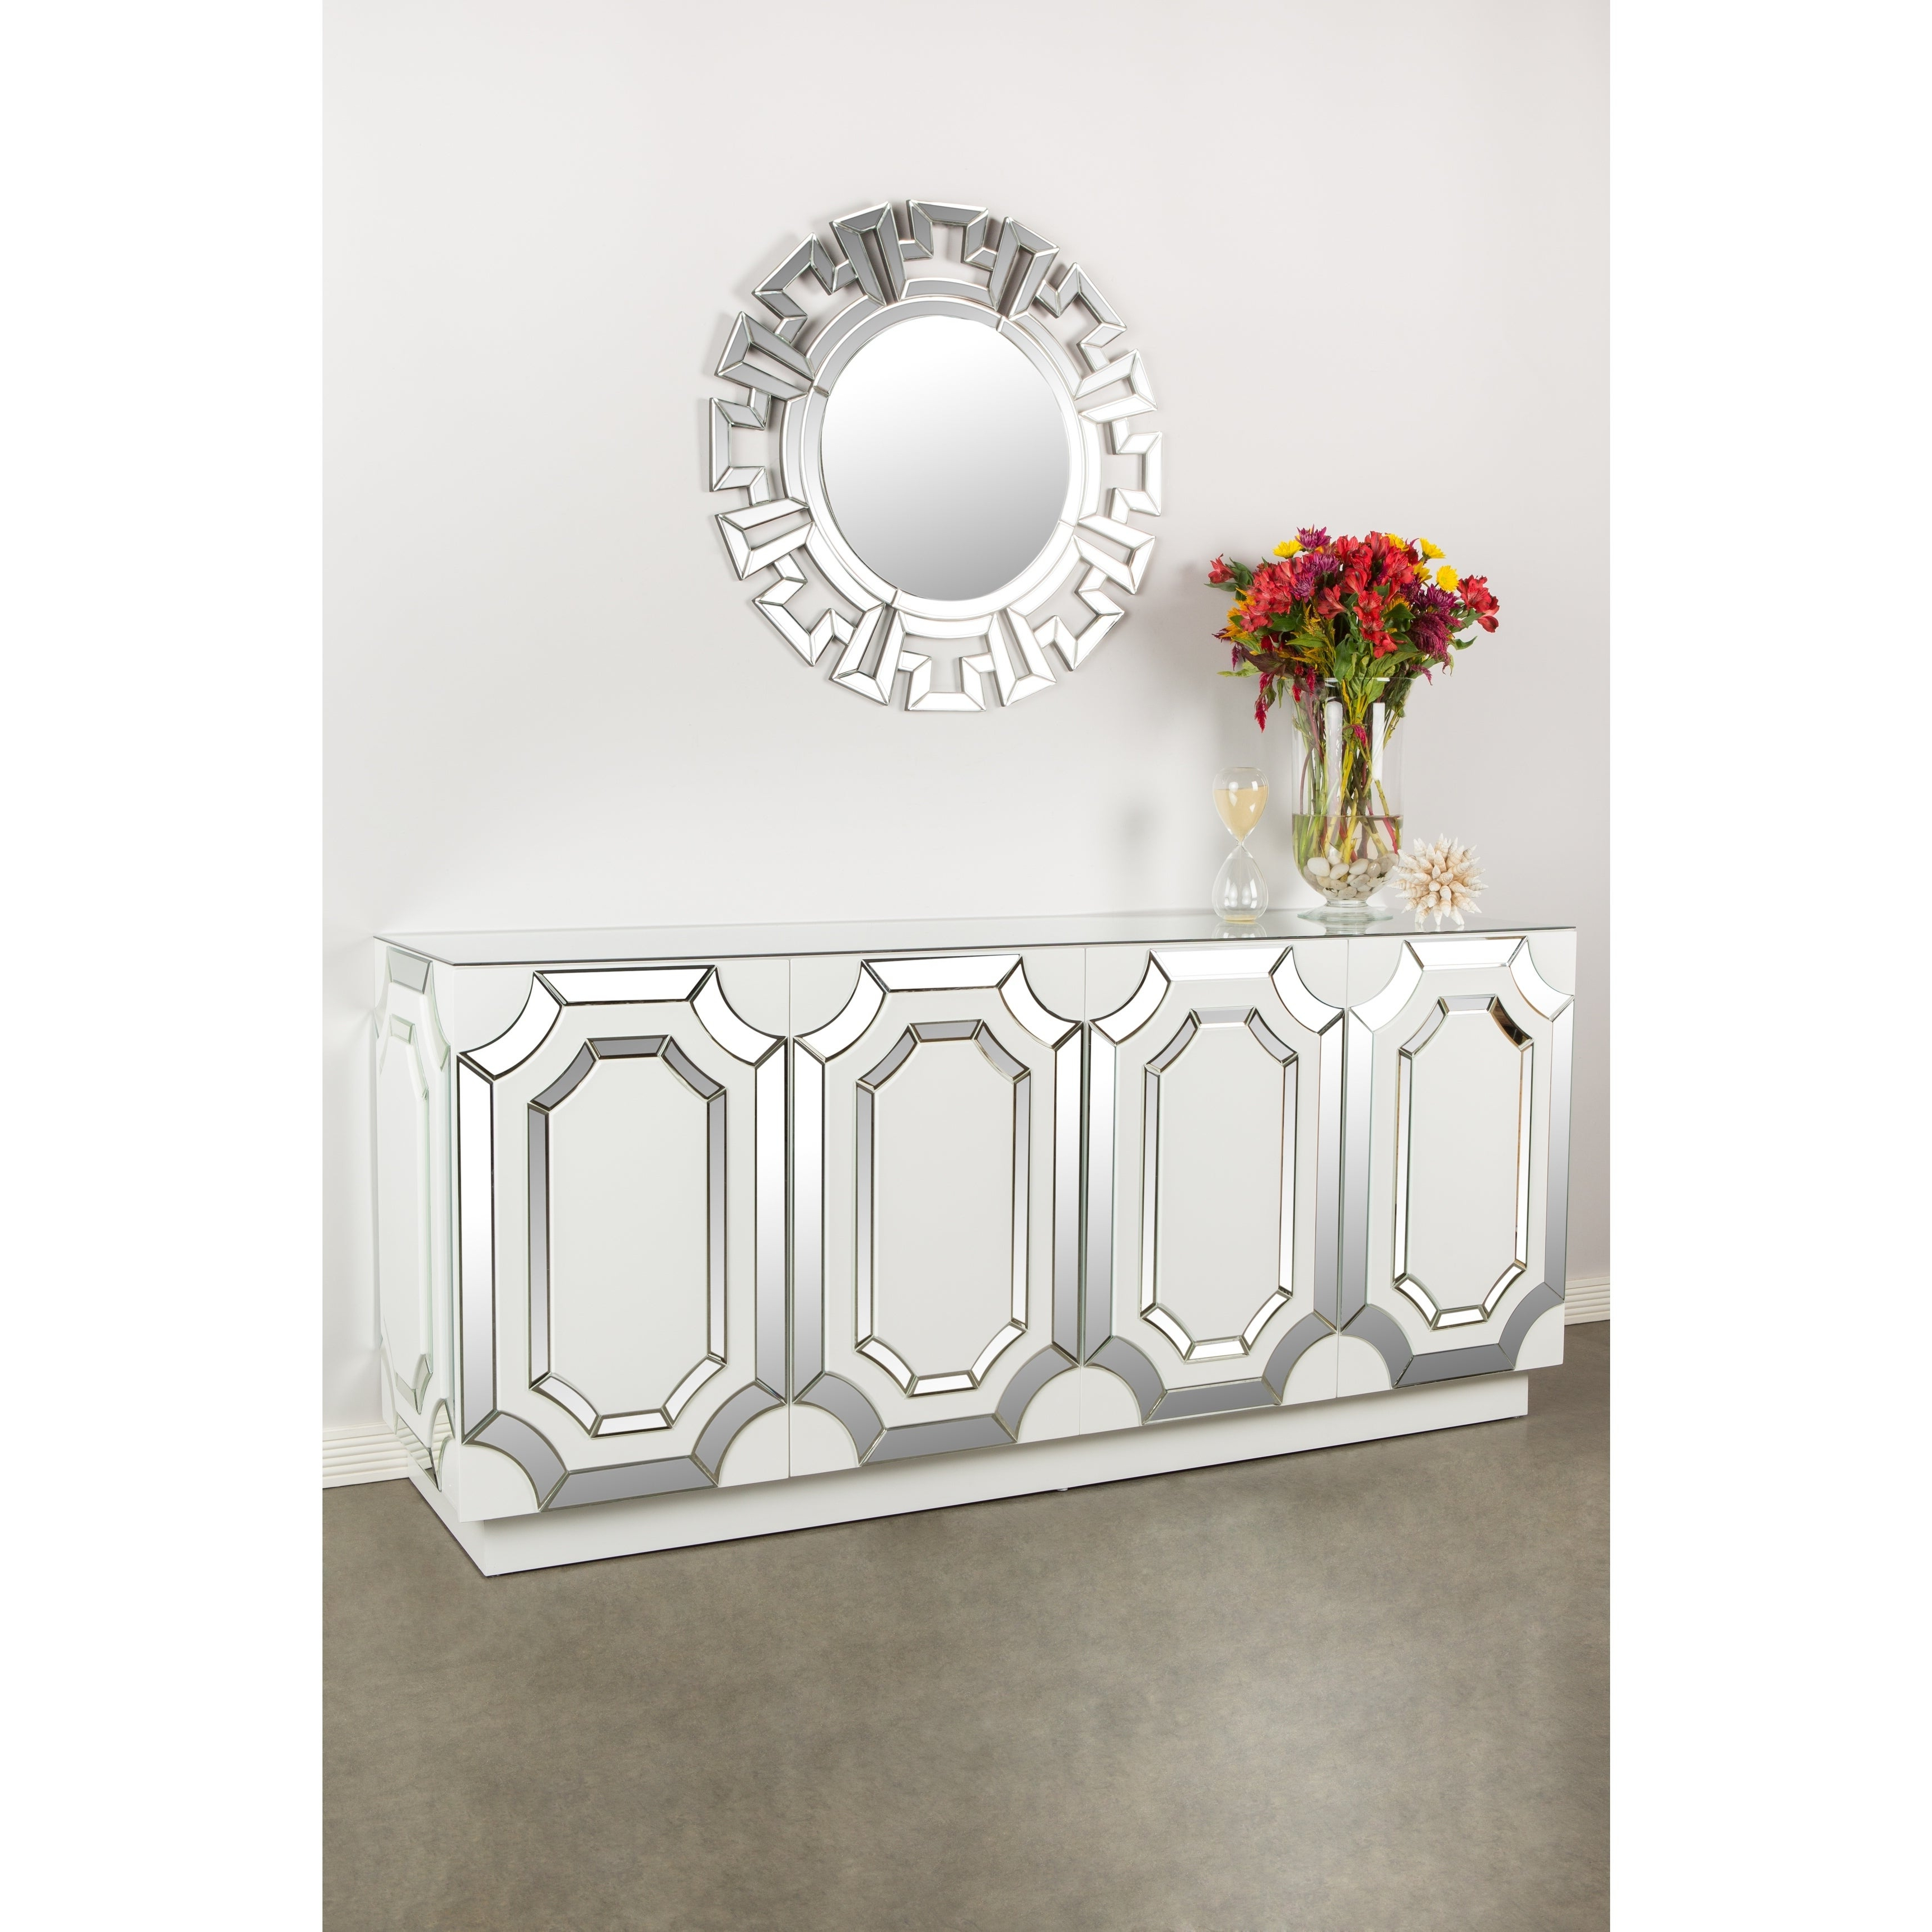 Widely Used Statementsj Lola Sideboard, 32 Inch Tall Within Lola Sideboards (Gallery 11 of 20)